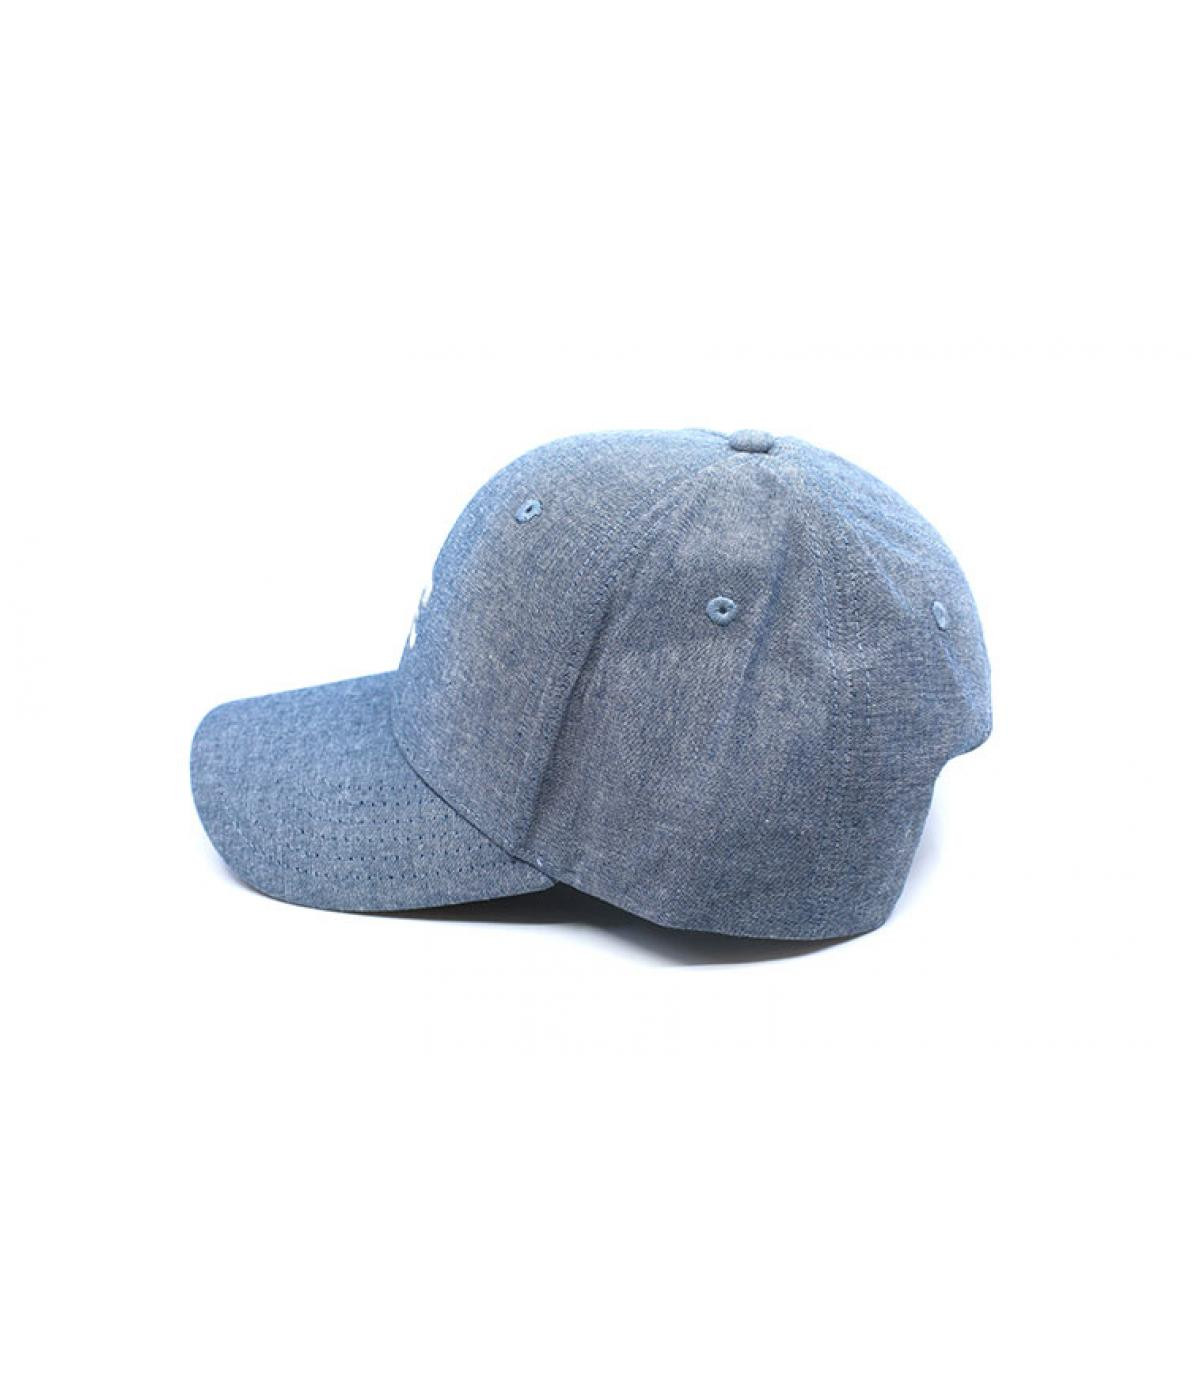 Details All Night Snapback chambray blue - afbeeling 4